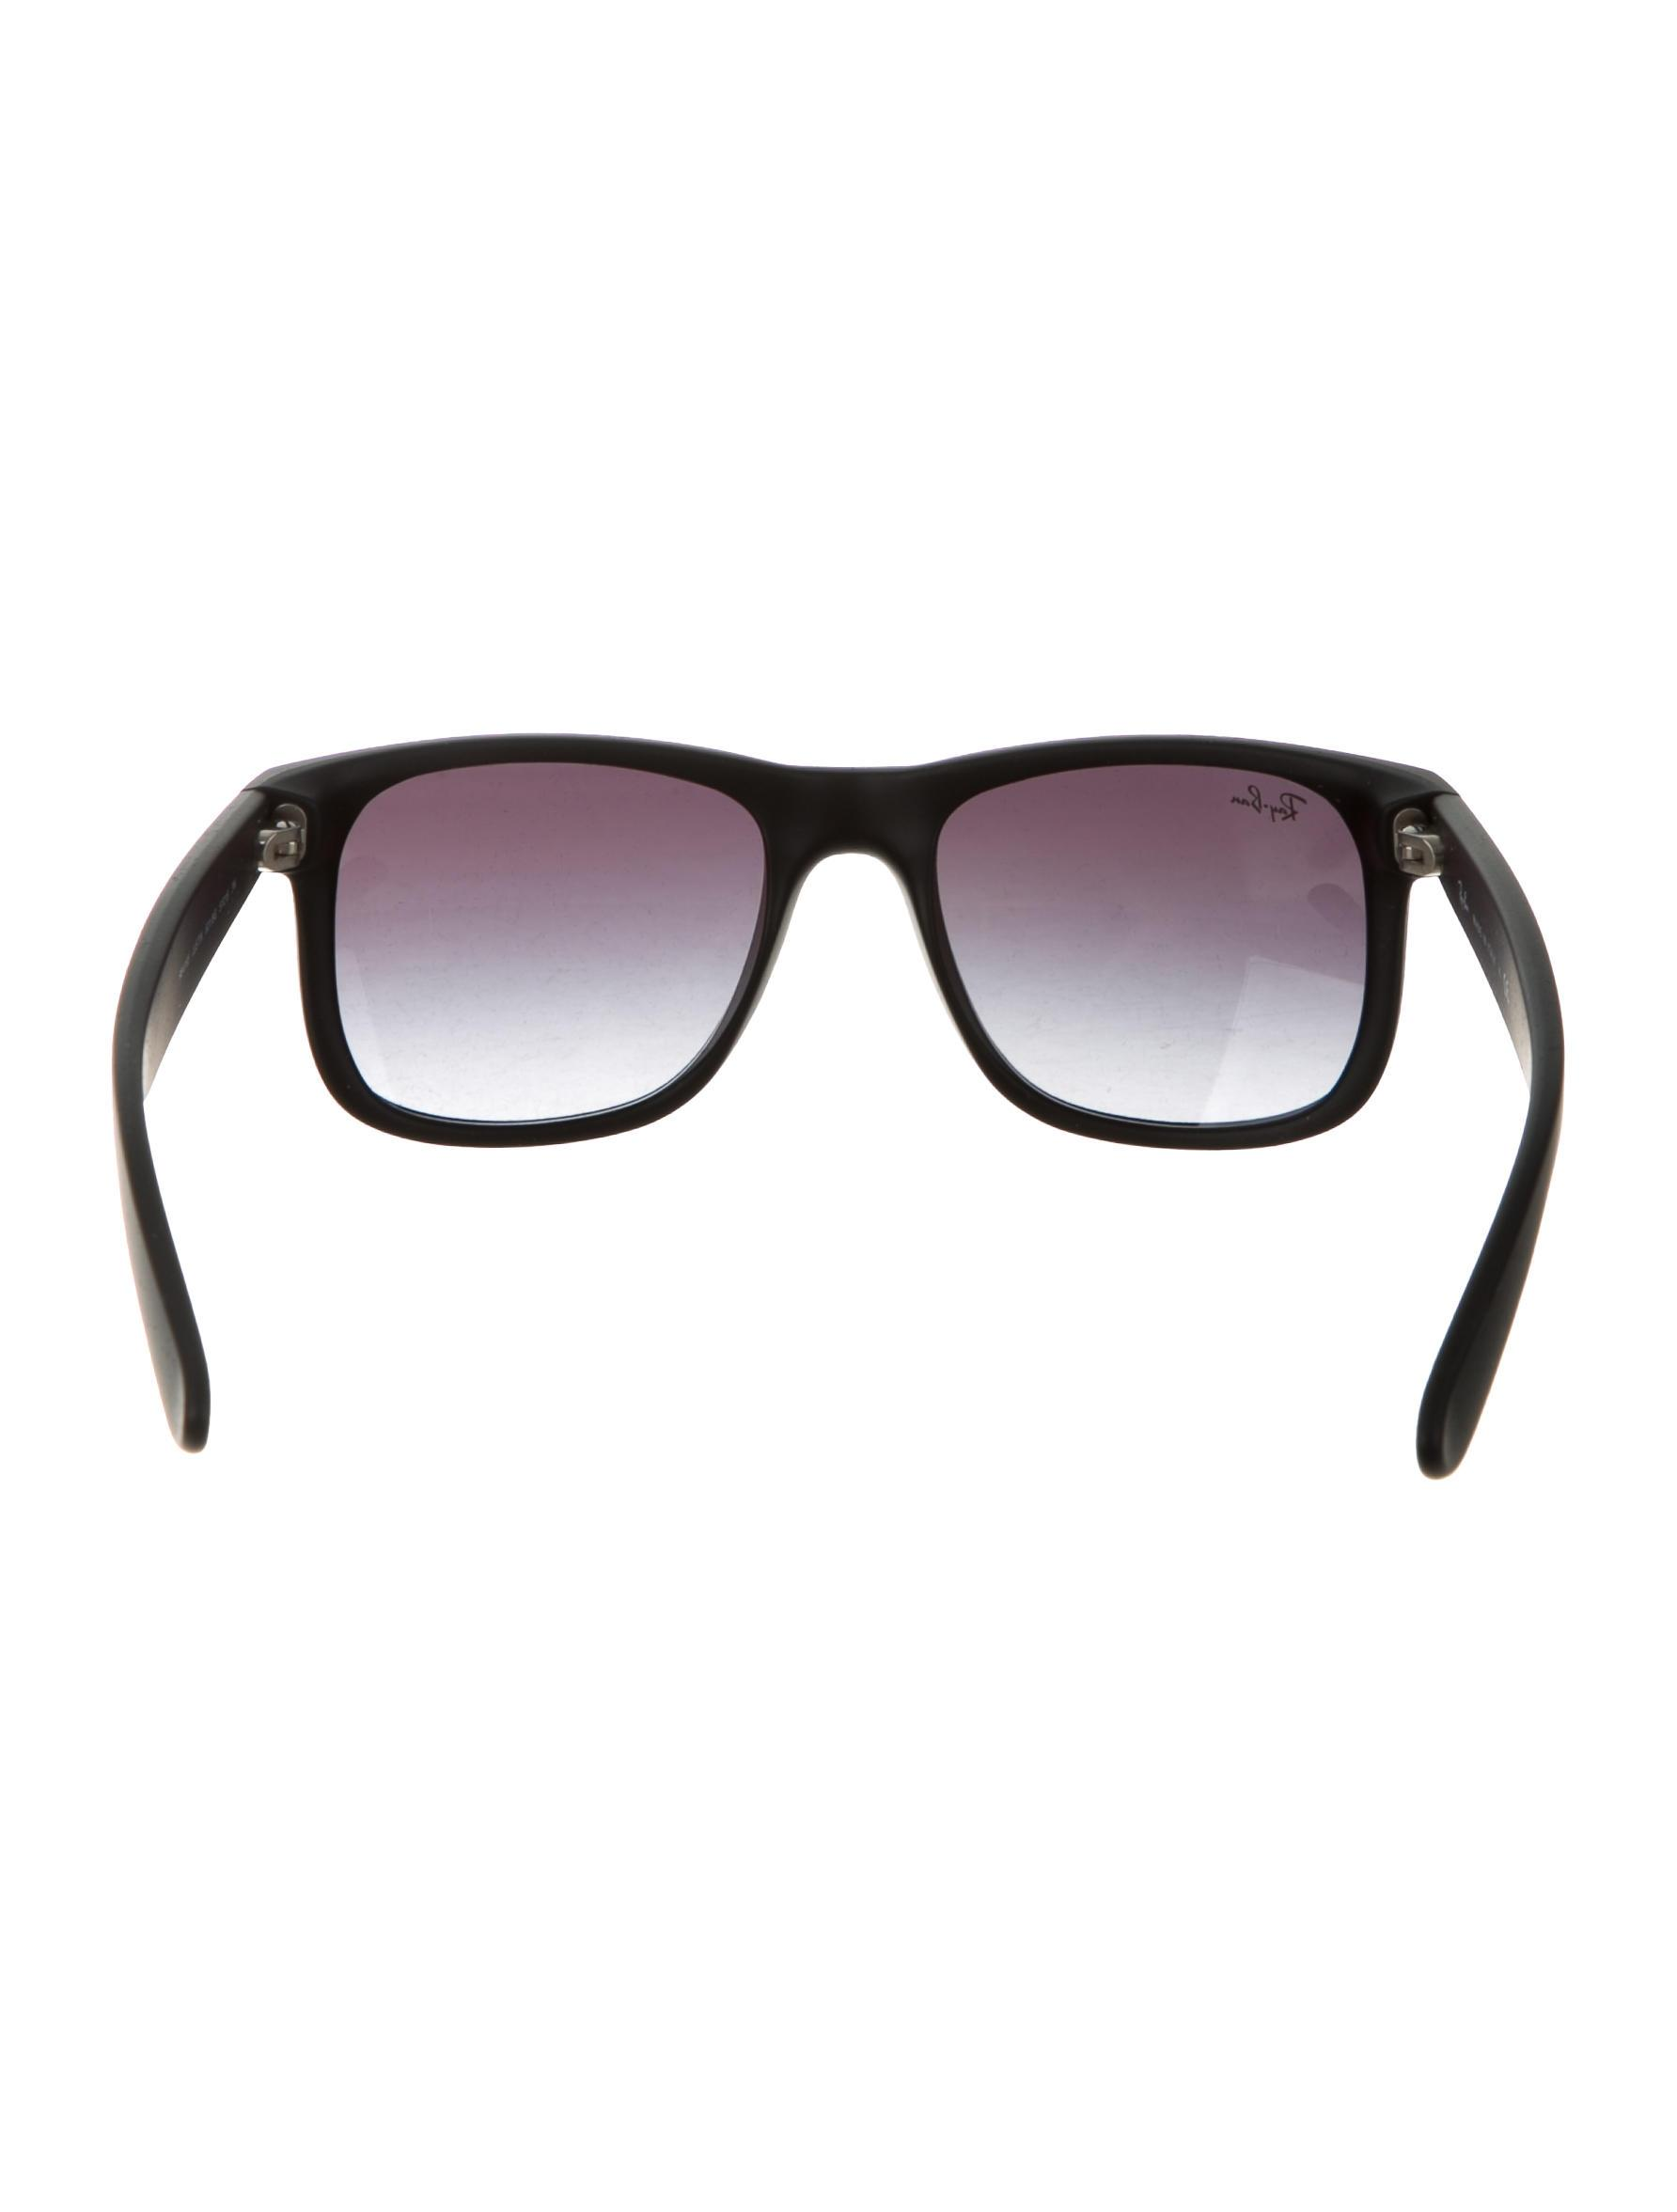 Stuccu: Best Deals on ray ban rb Up To 70% offFree Shipping· Special Discounts· Lowest Prices· Best Offers.